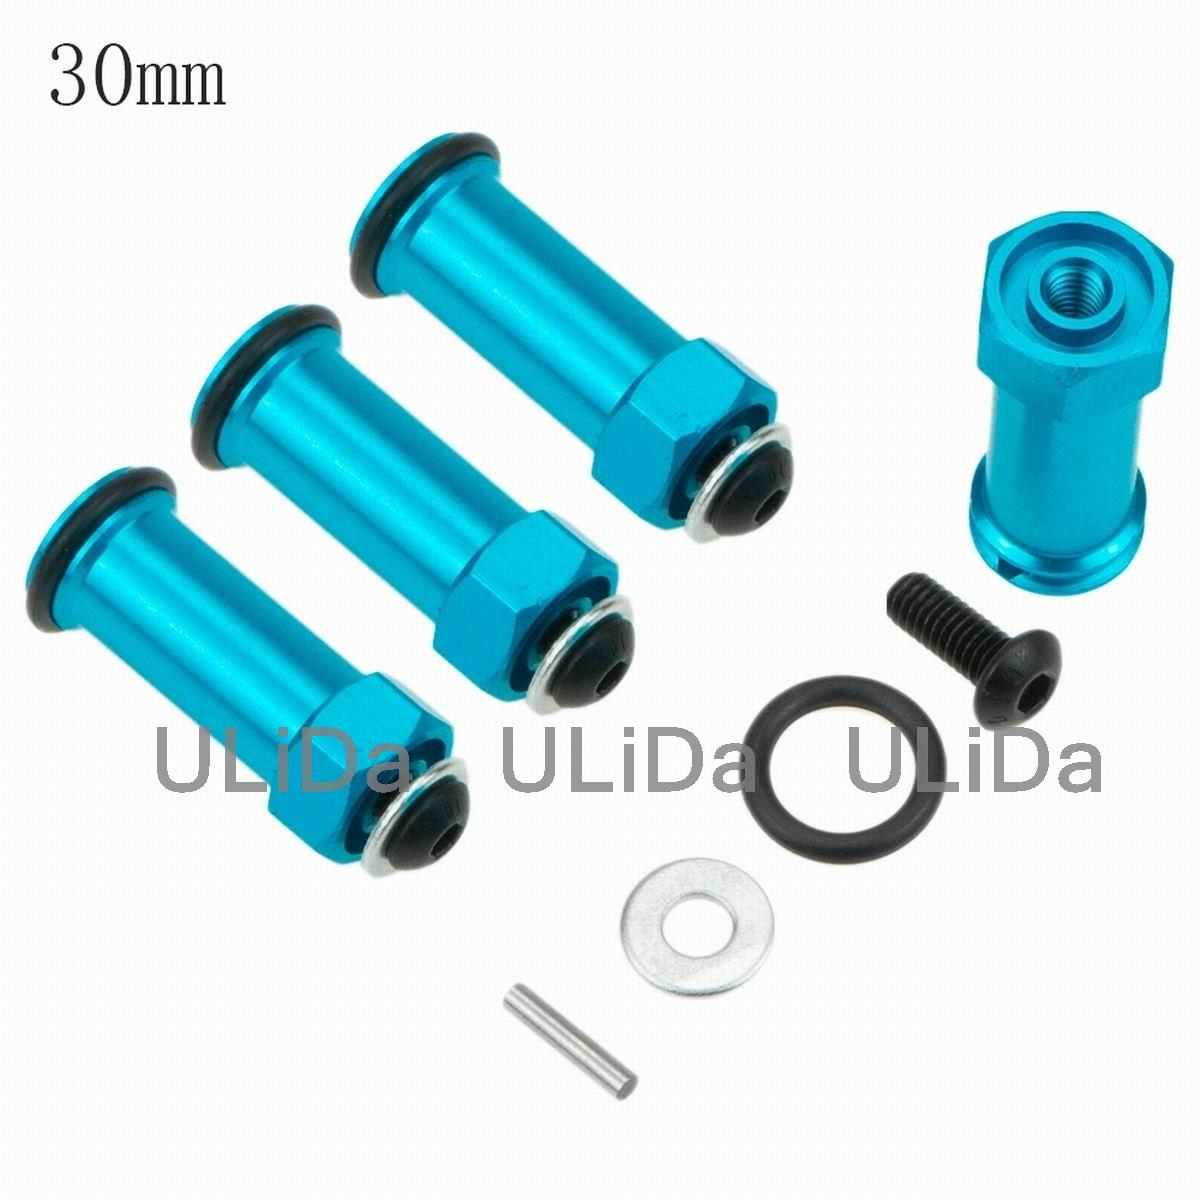 RC Car 1/10 Scale Upgrade Parts Aluminum Alloy 12mm Wheel Hex Hub Extension Adapter 25mm 30mm Hex Drive For Traxxas Slash 4x4